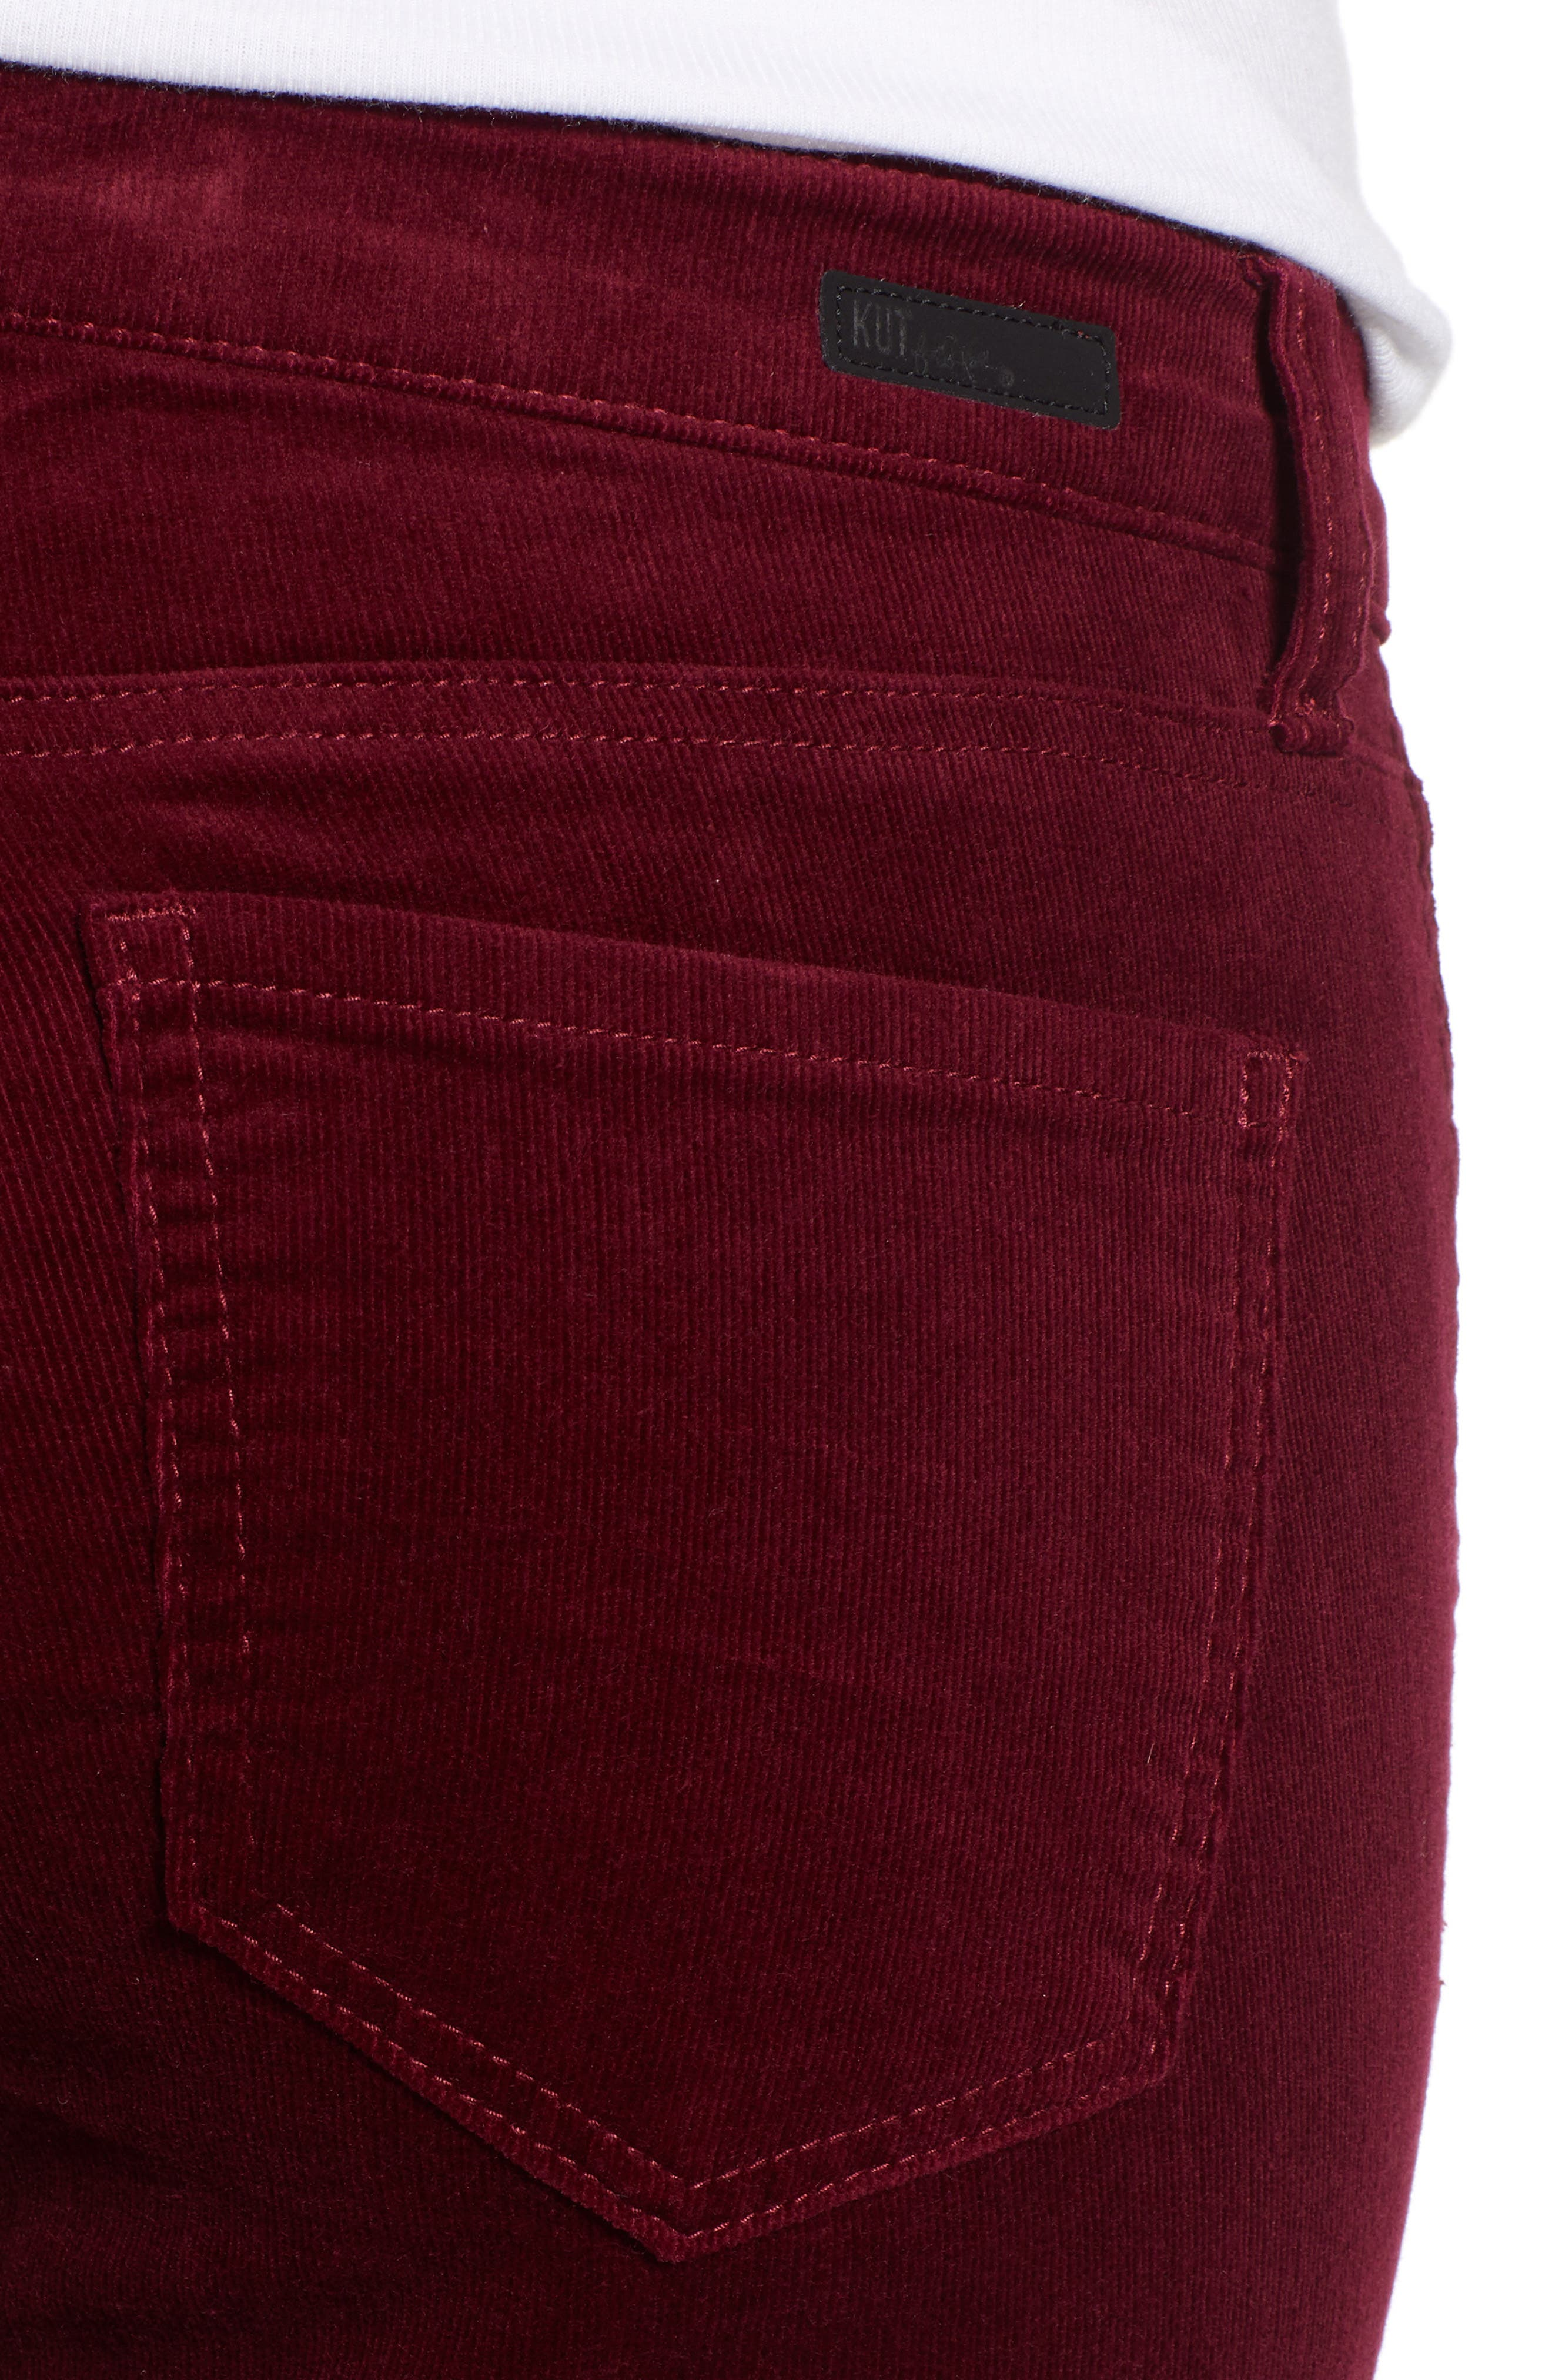 Baby Bootcut Corduroy Jeans,                             Alternate thumbnail 83, color,